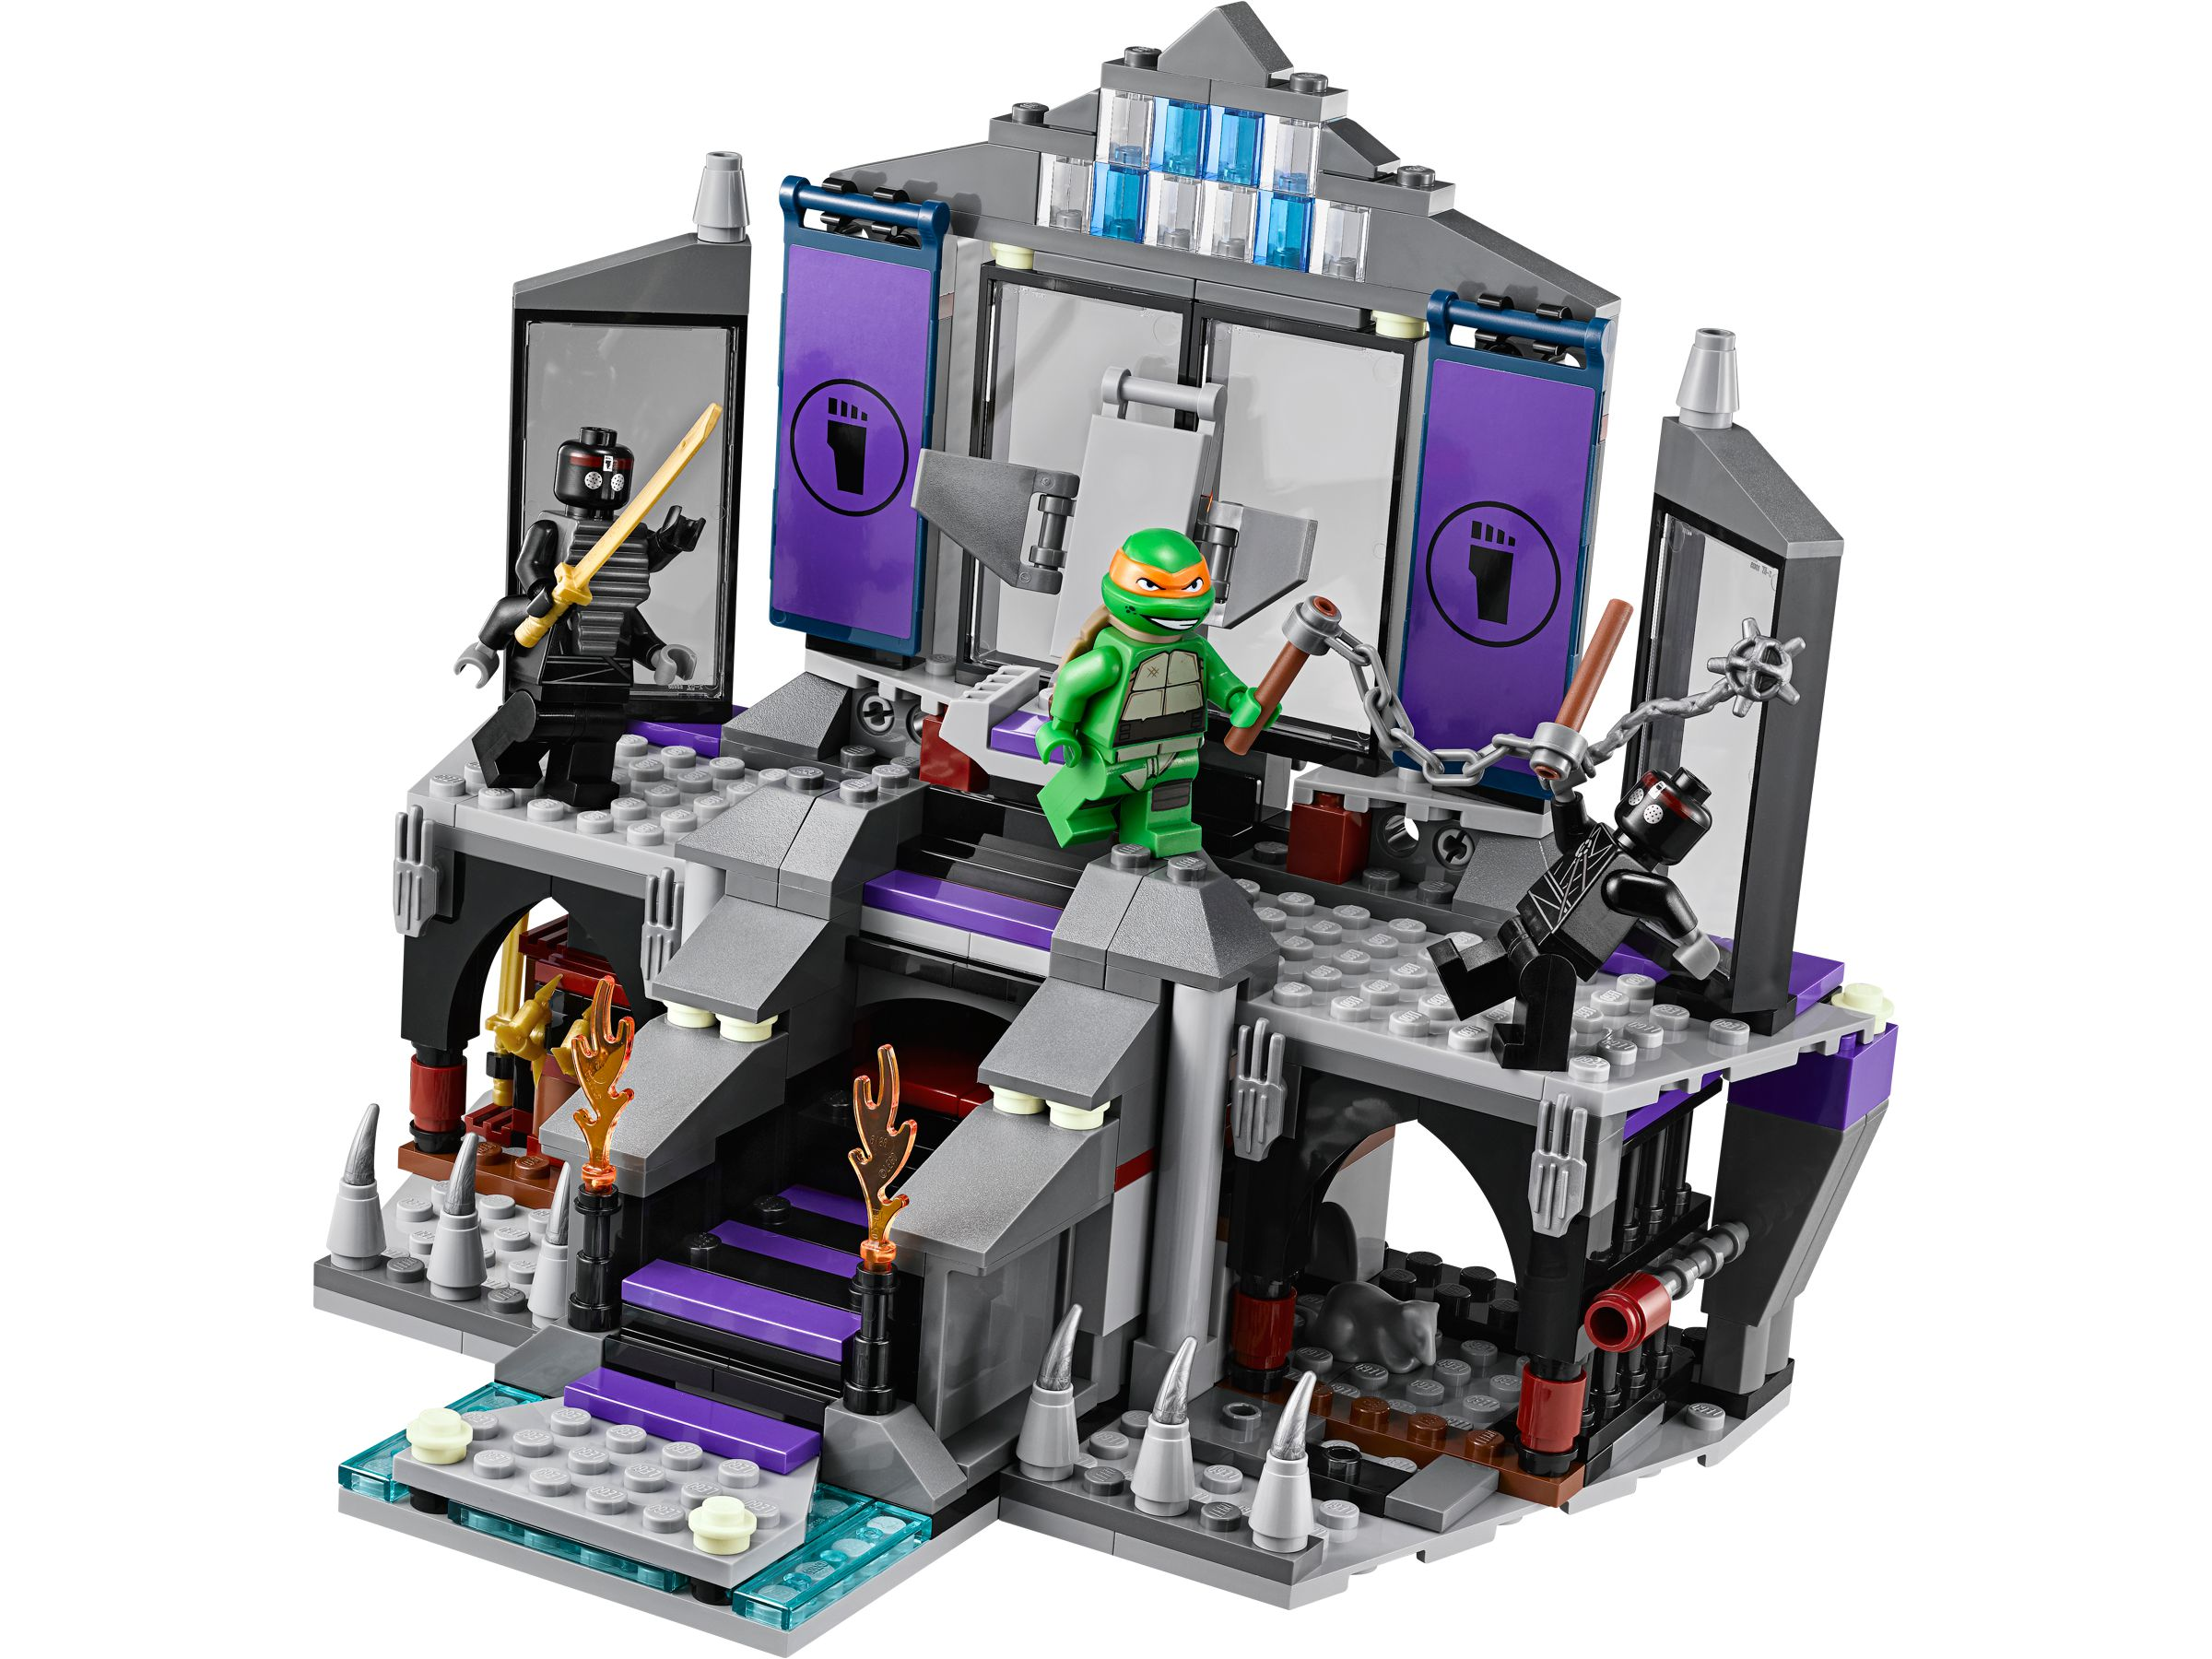 LEGO Teenage Mutant Ninja Turtles 79122 Rettung aus Shredders Versteck LEGO_79122_alt3.jpg